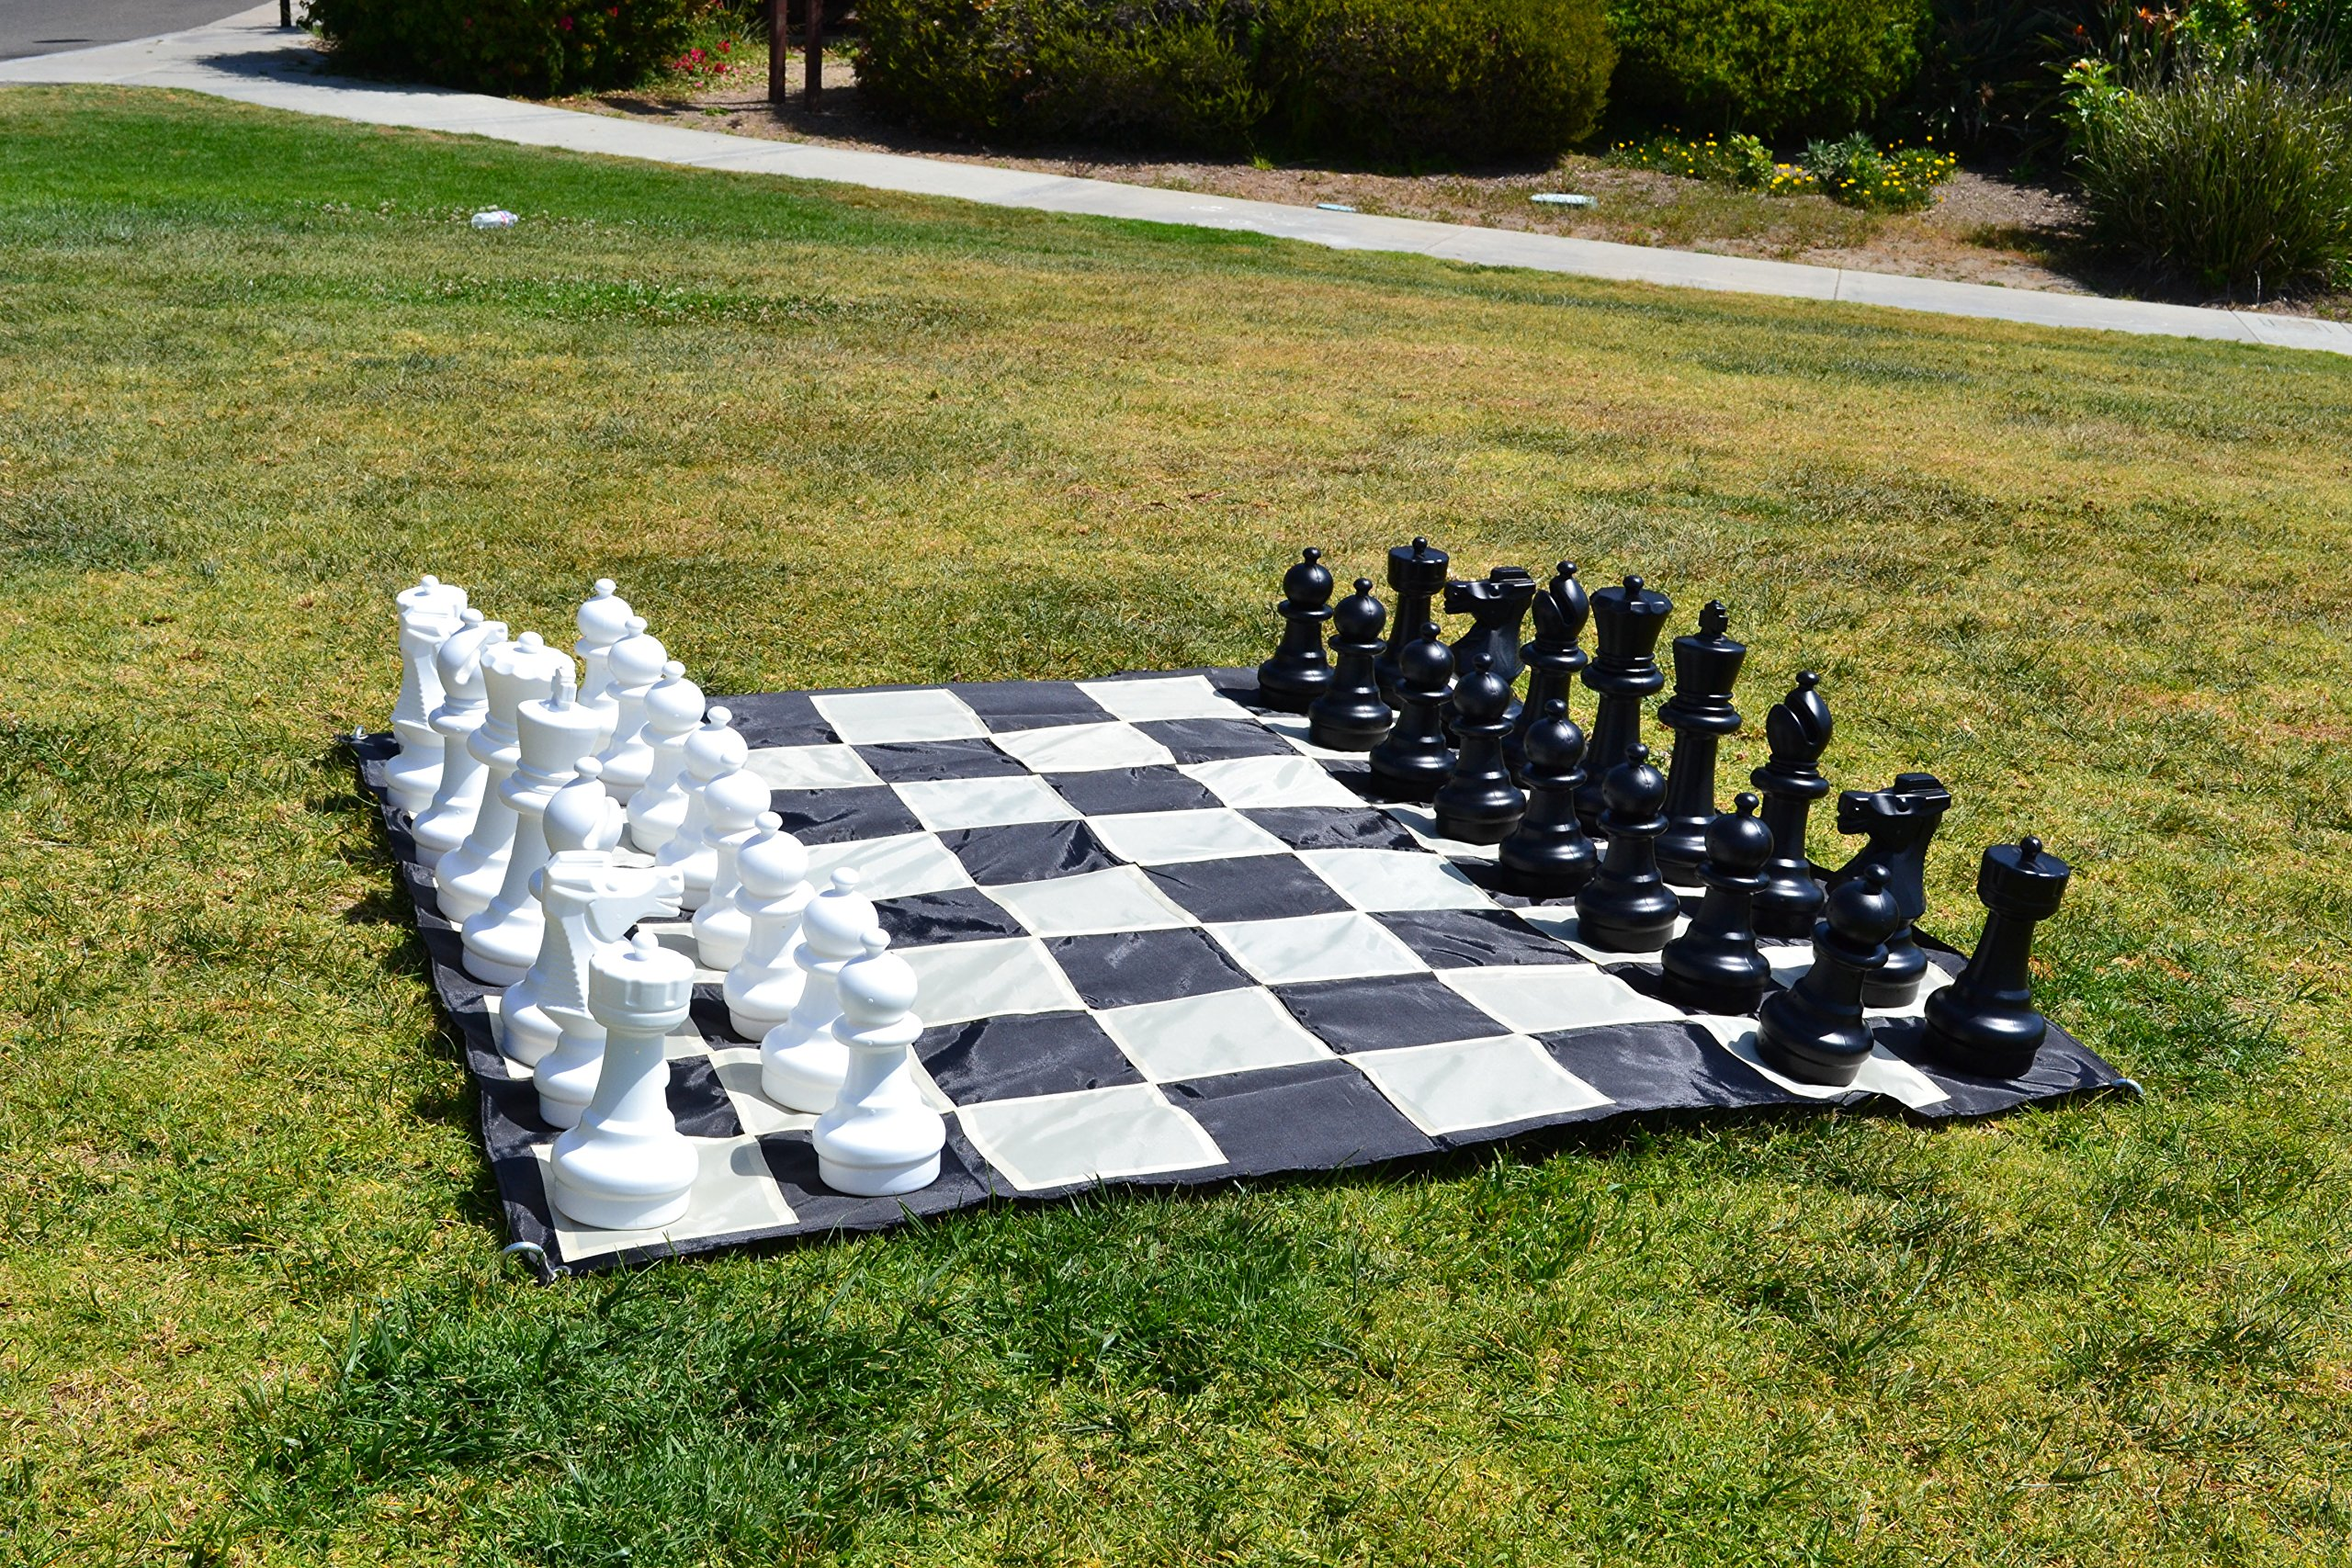 MegaChess Large Chess Pieces - Black and White - Plastic Set - 12 inch King